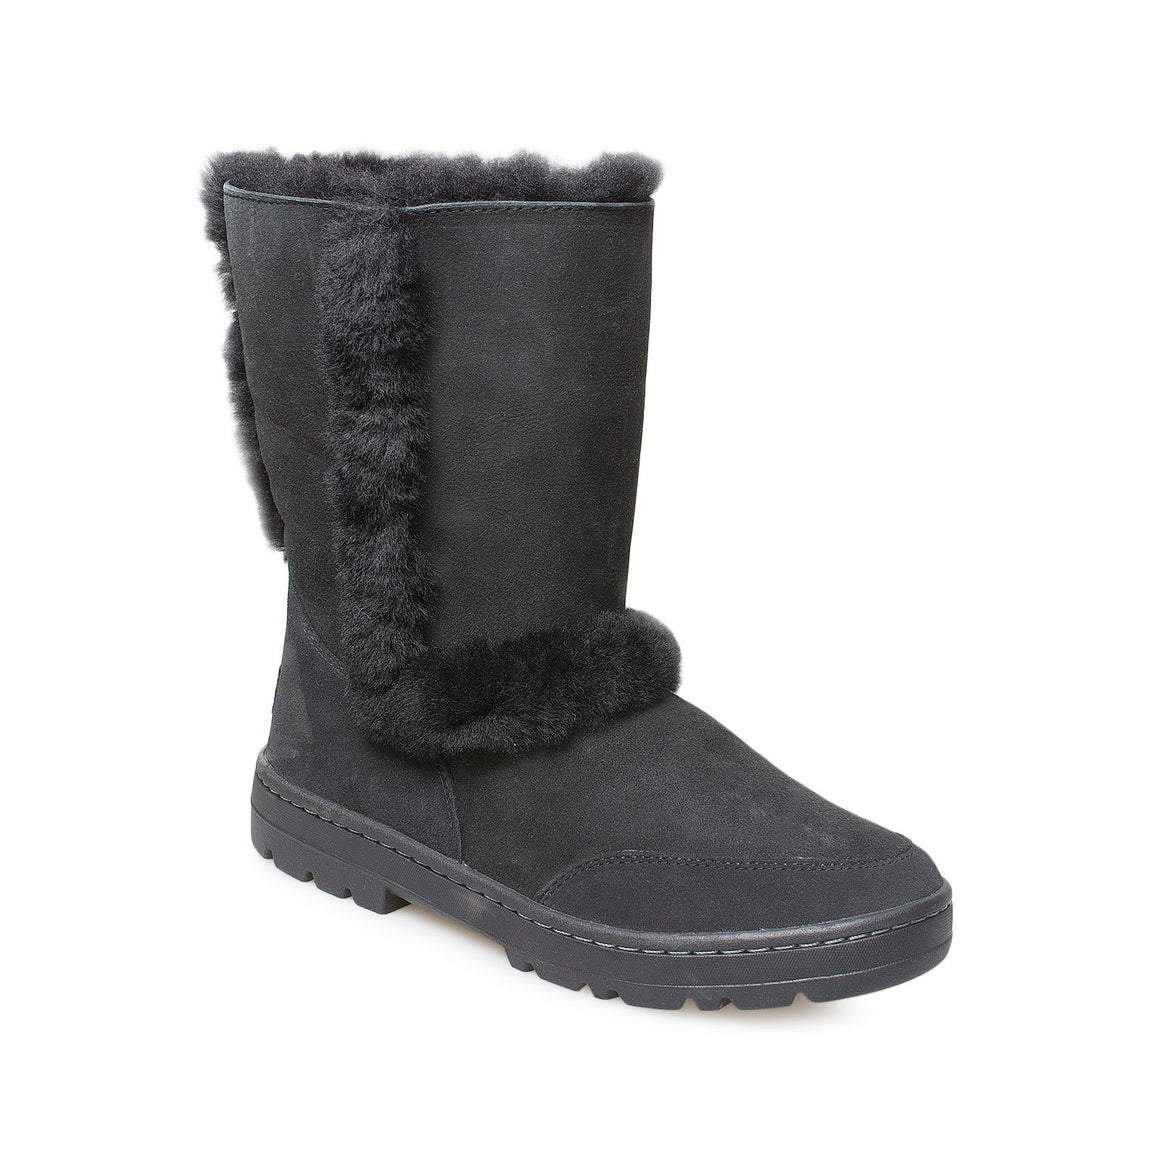 UGG Sundance Short II Revival Black Boots - Women's